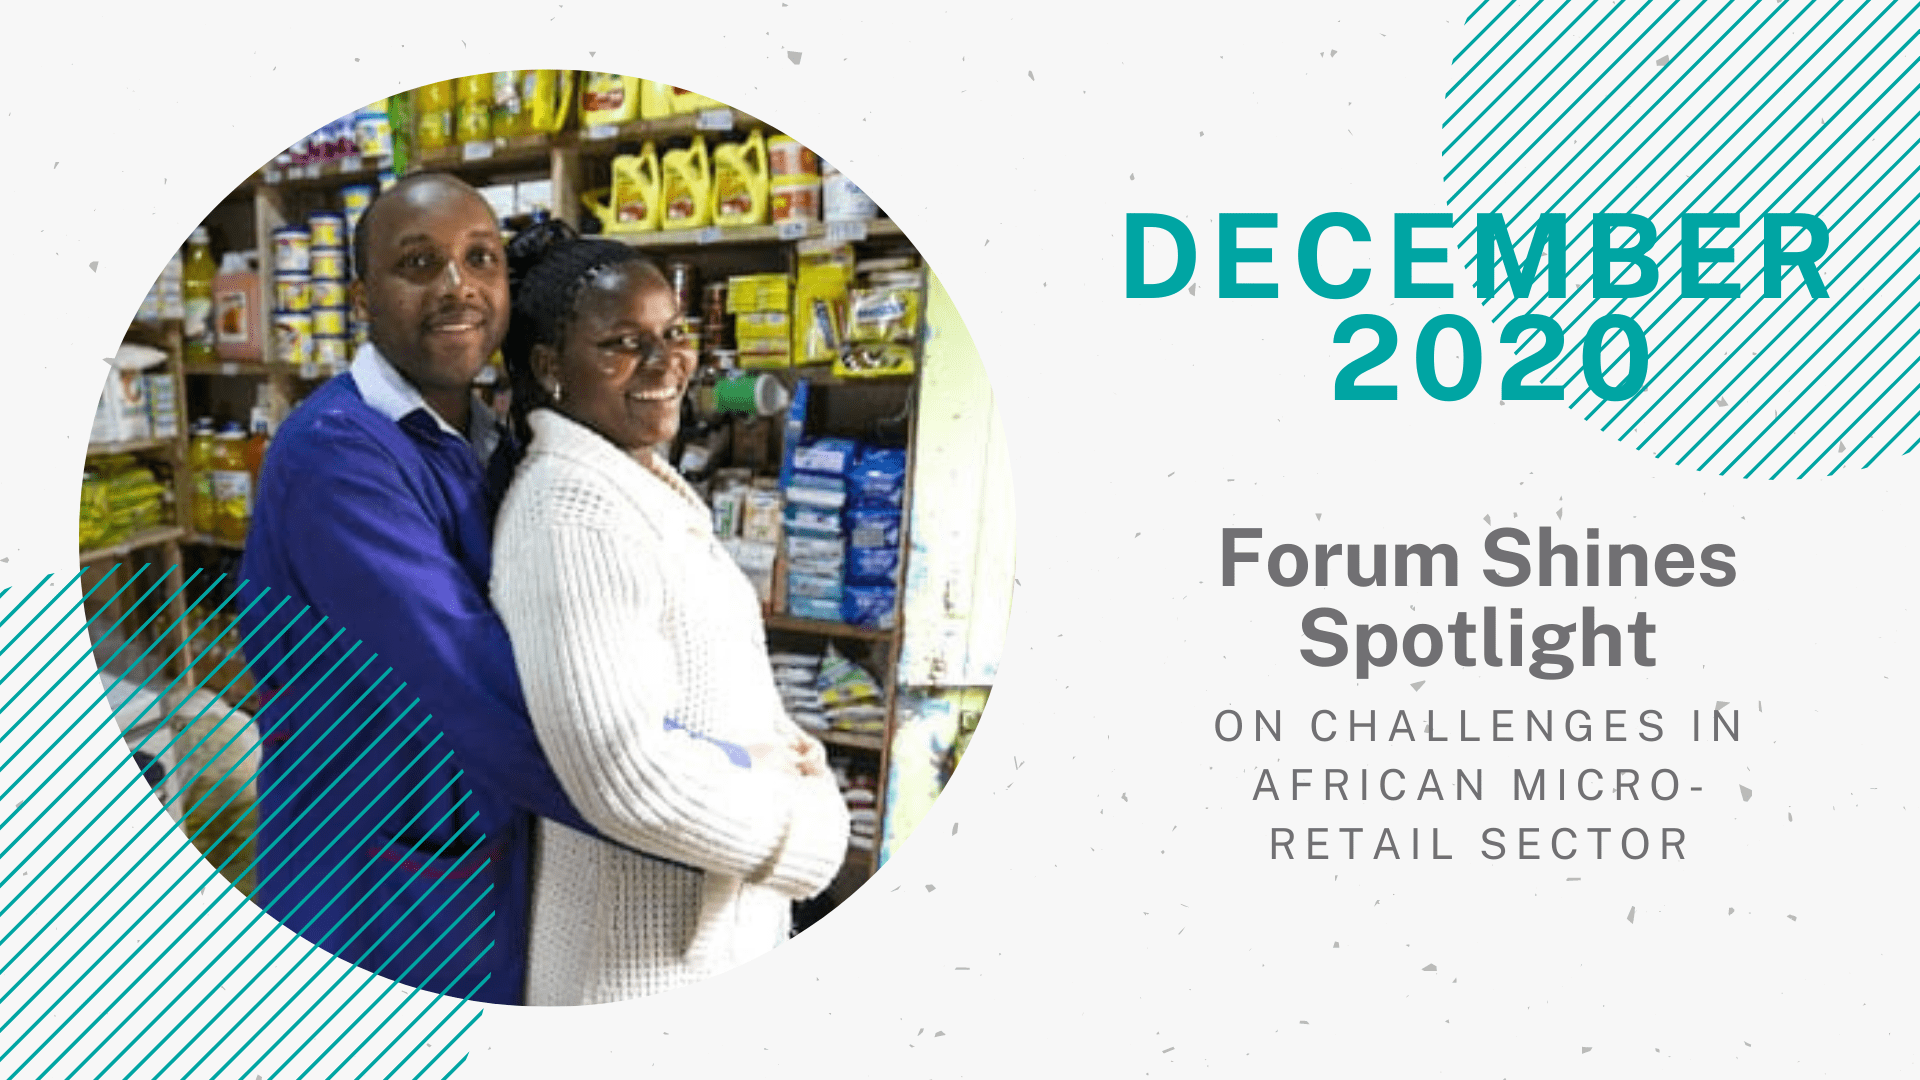 "A decorative graphic for the December section of TechnoServe's Year in Review 2020 blog. On the right half of this graphic, text in teal and grey font reads "" December 2020: .Forum Shines Spotlight on Challenges in African Micro-Retail Sector."" The left half displays two proud entrepreneurs from the micro-retail sector in Africa."